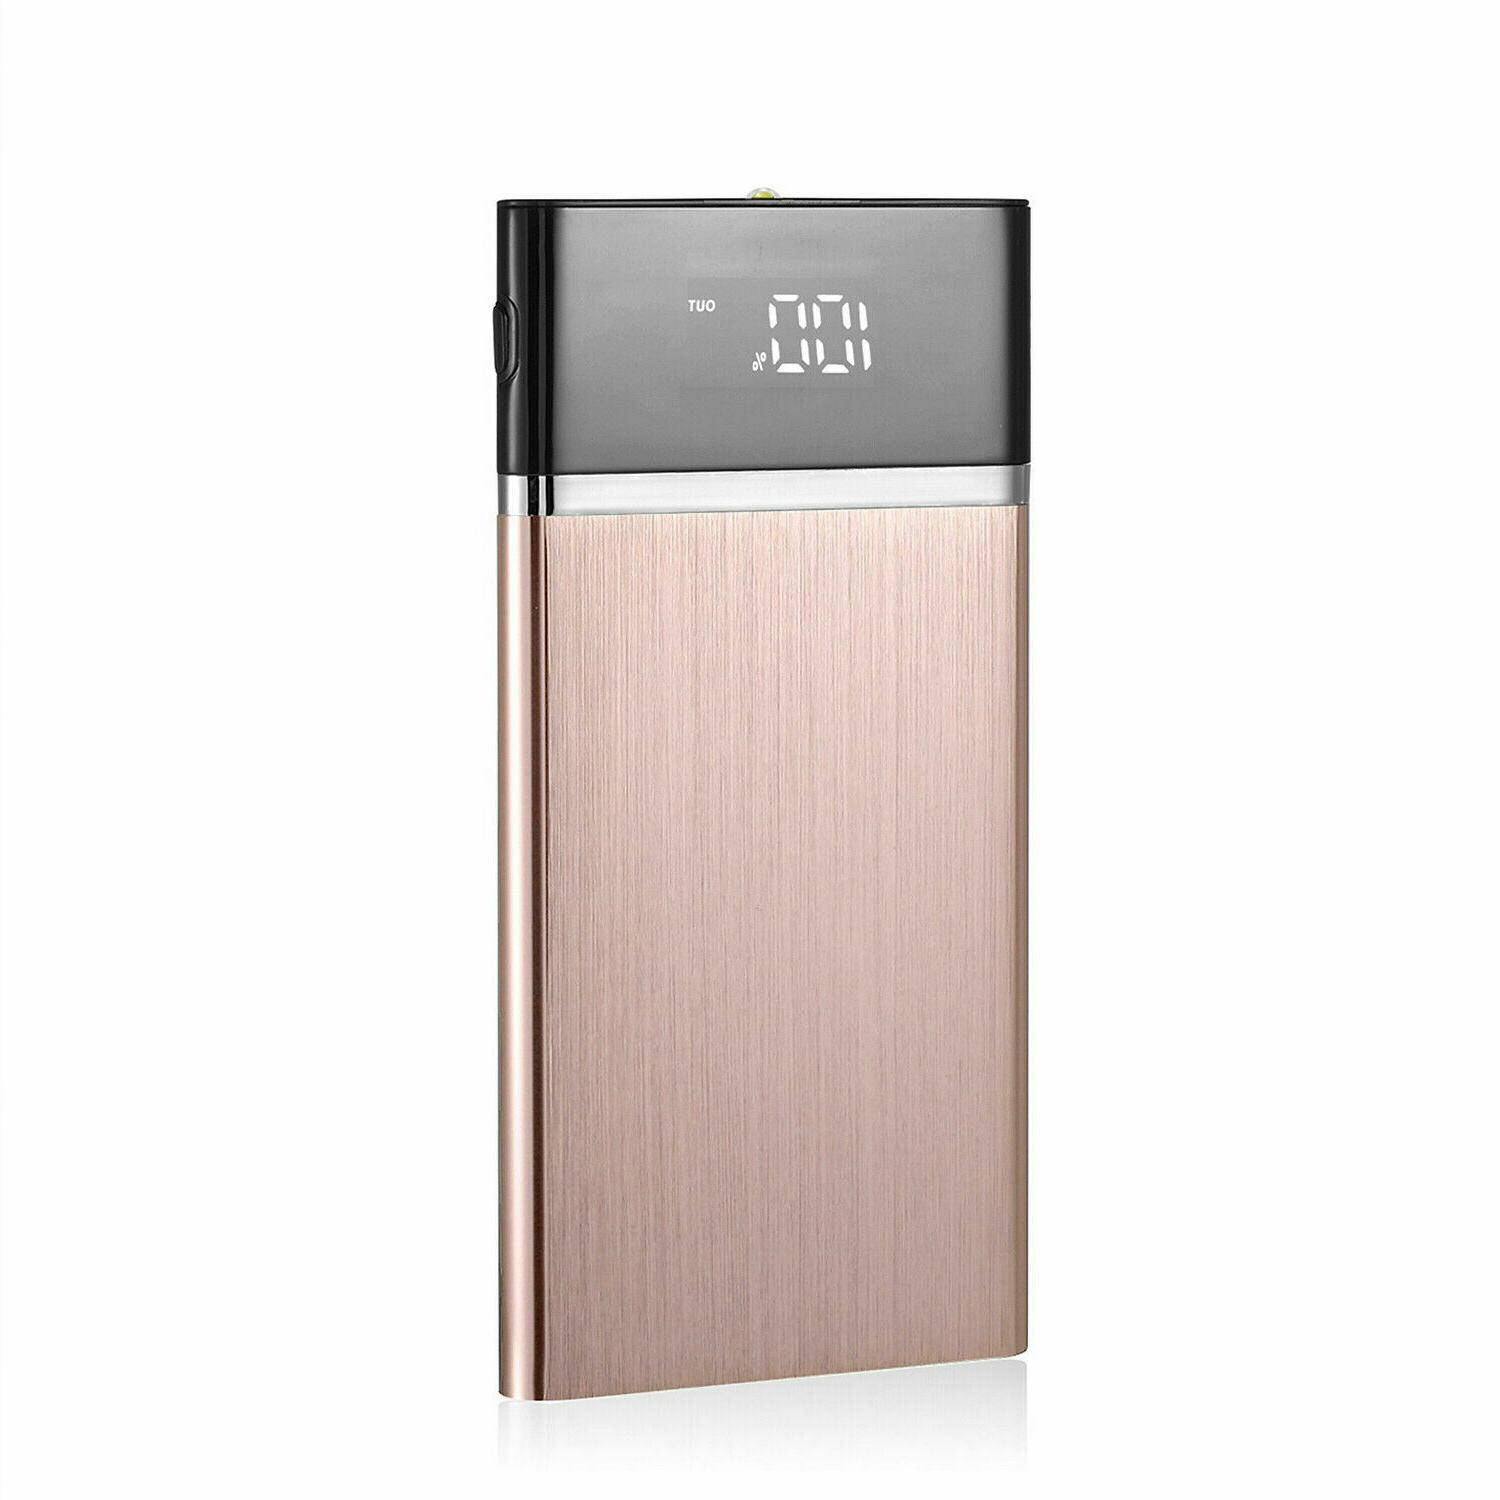 2019 Portable Battery Huge Capacity